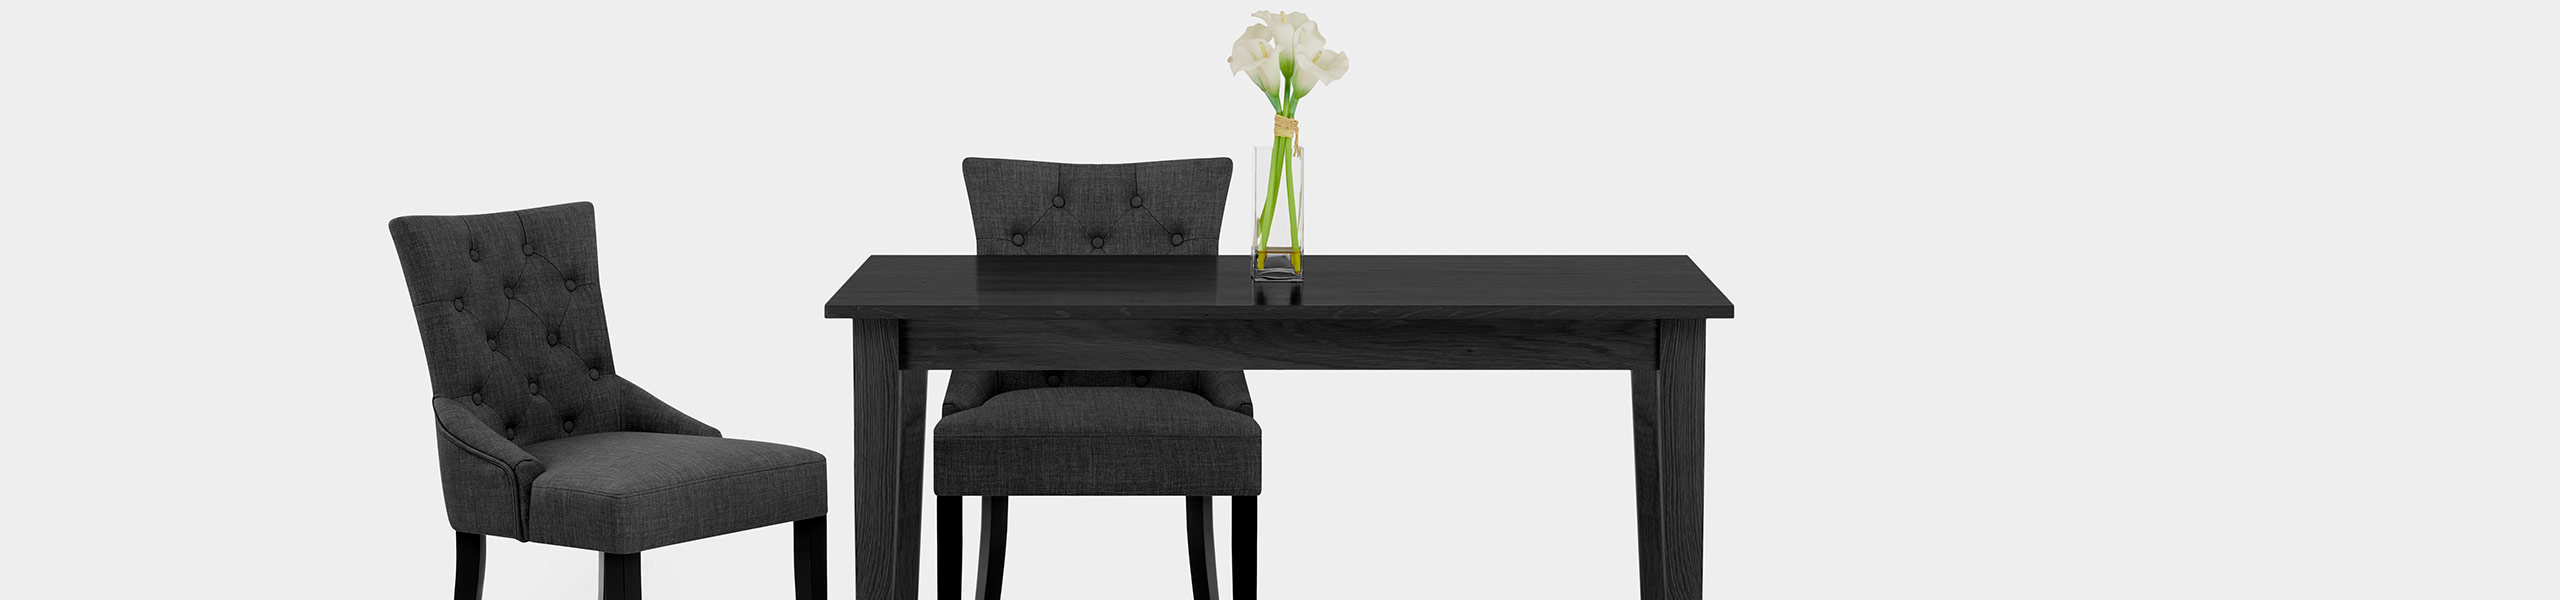 Verdi Chair Grey Video Banner